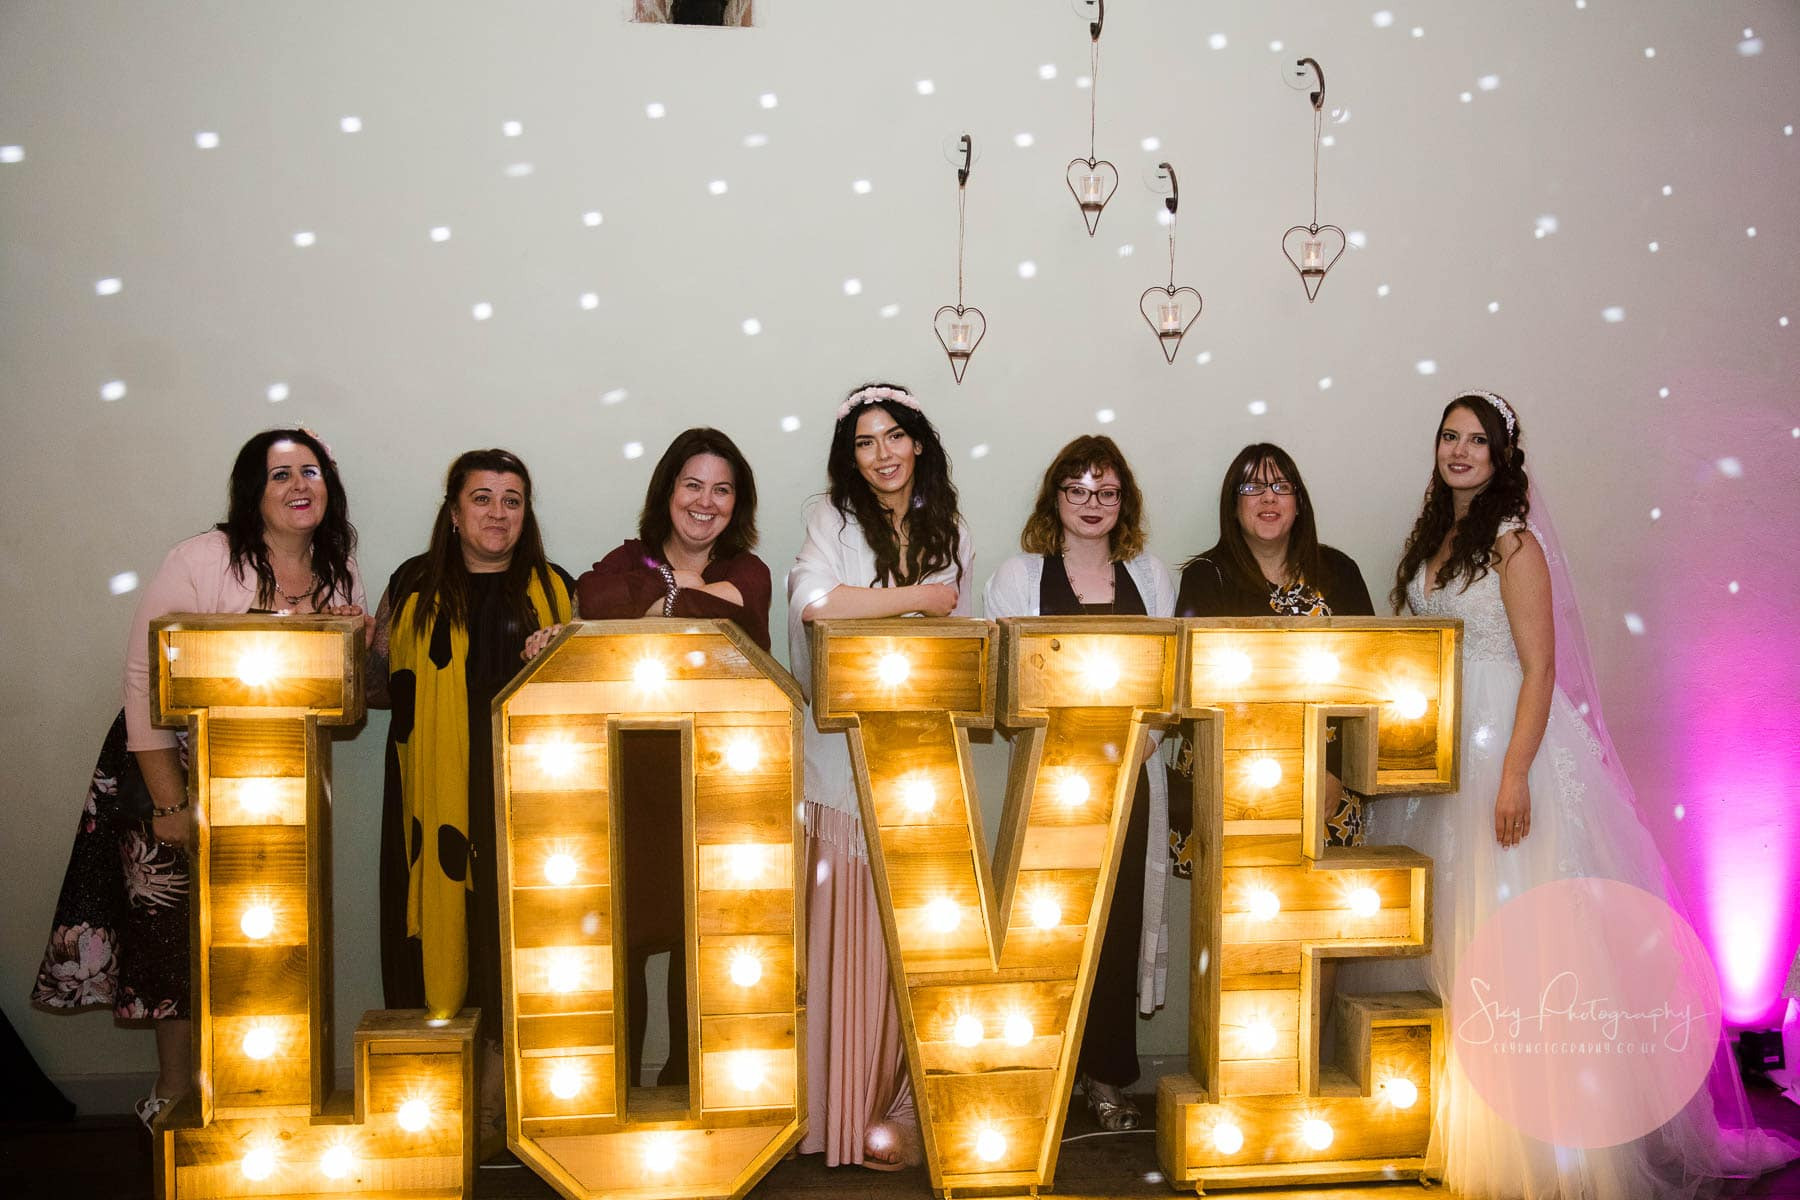 LittleWishes Large wedding letters at Dodmoor House dance floor, with guests standing behind them